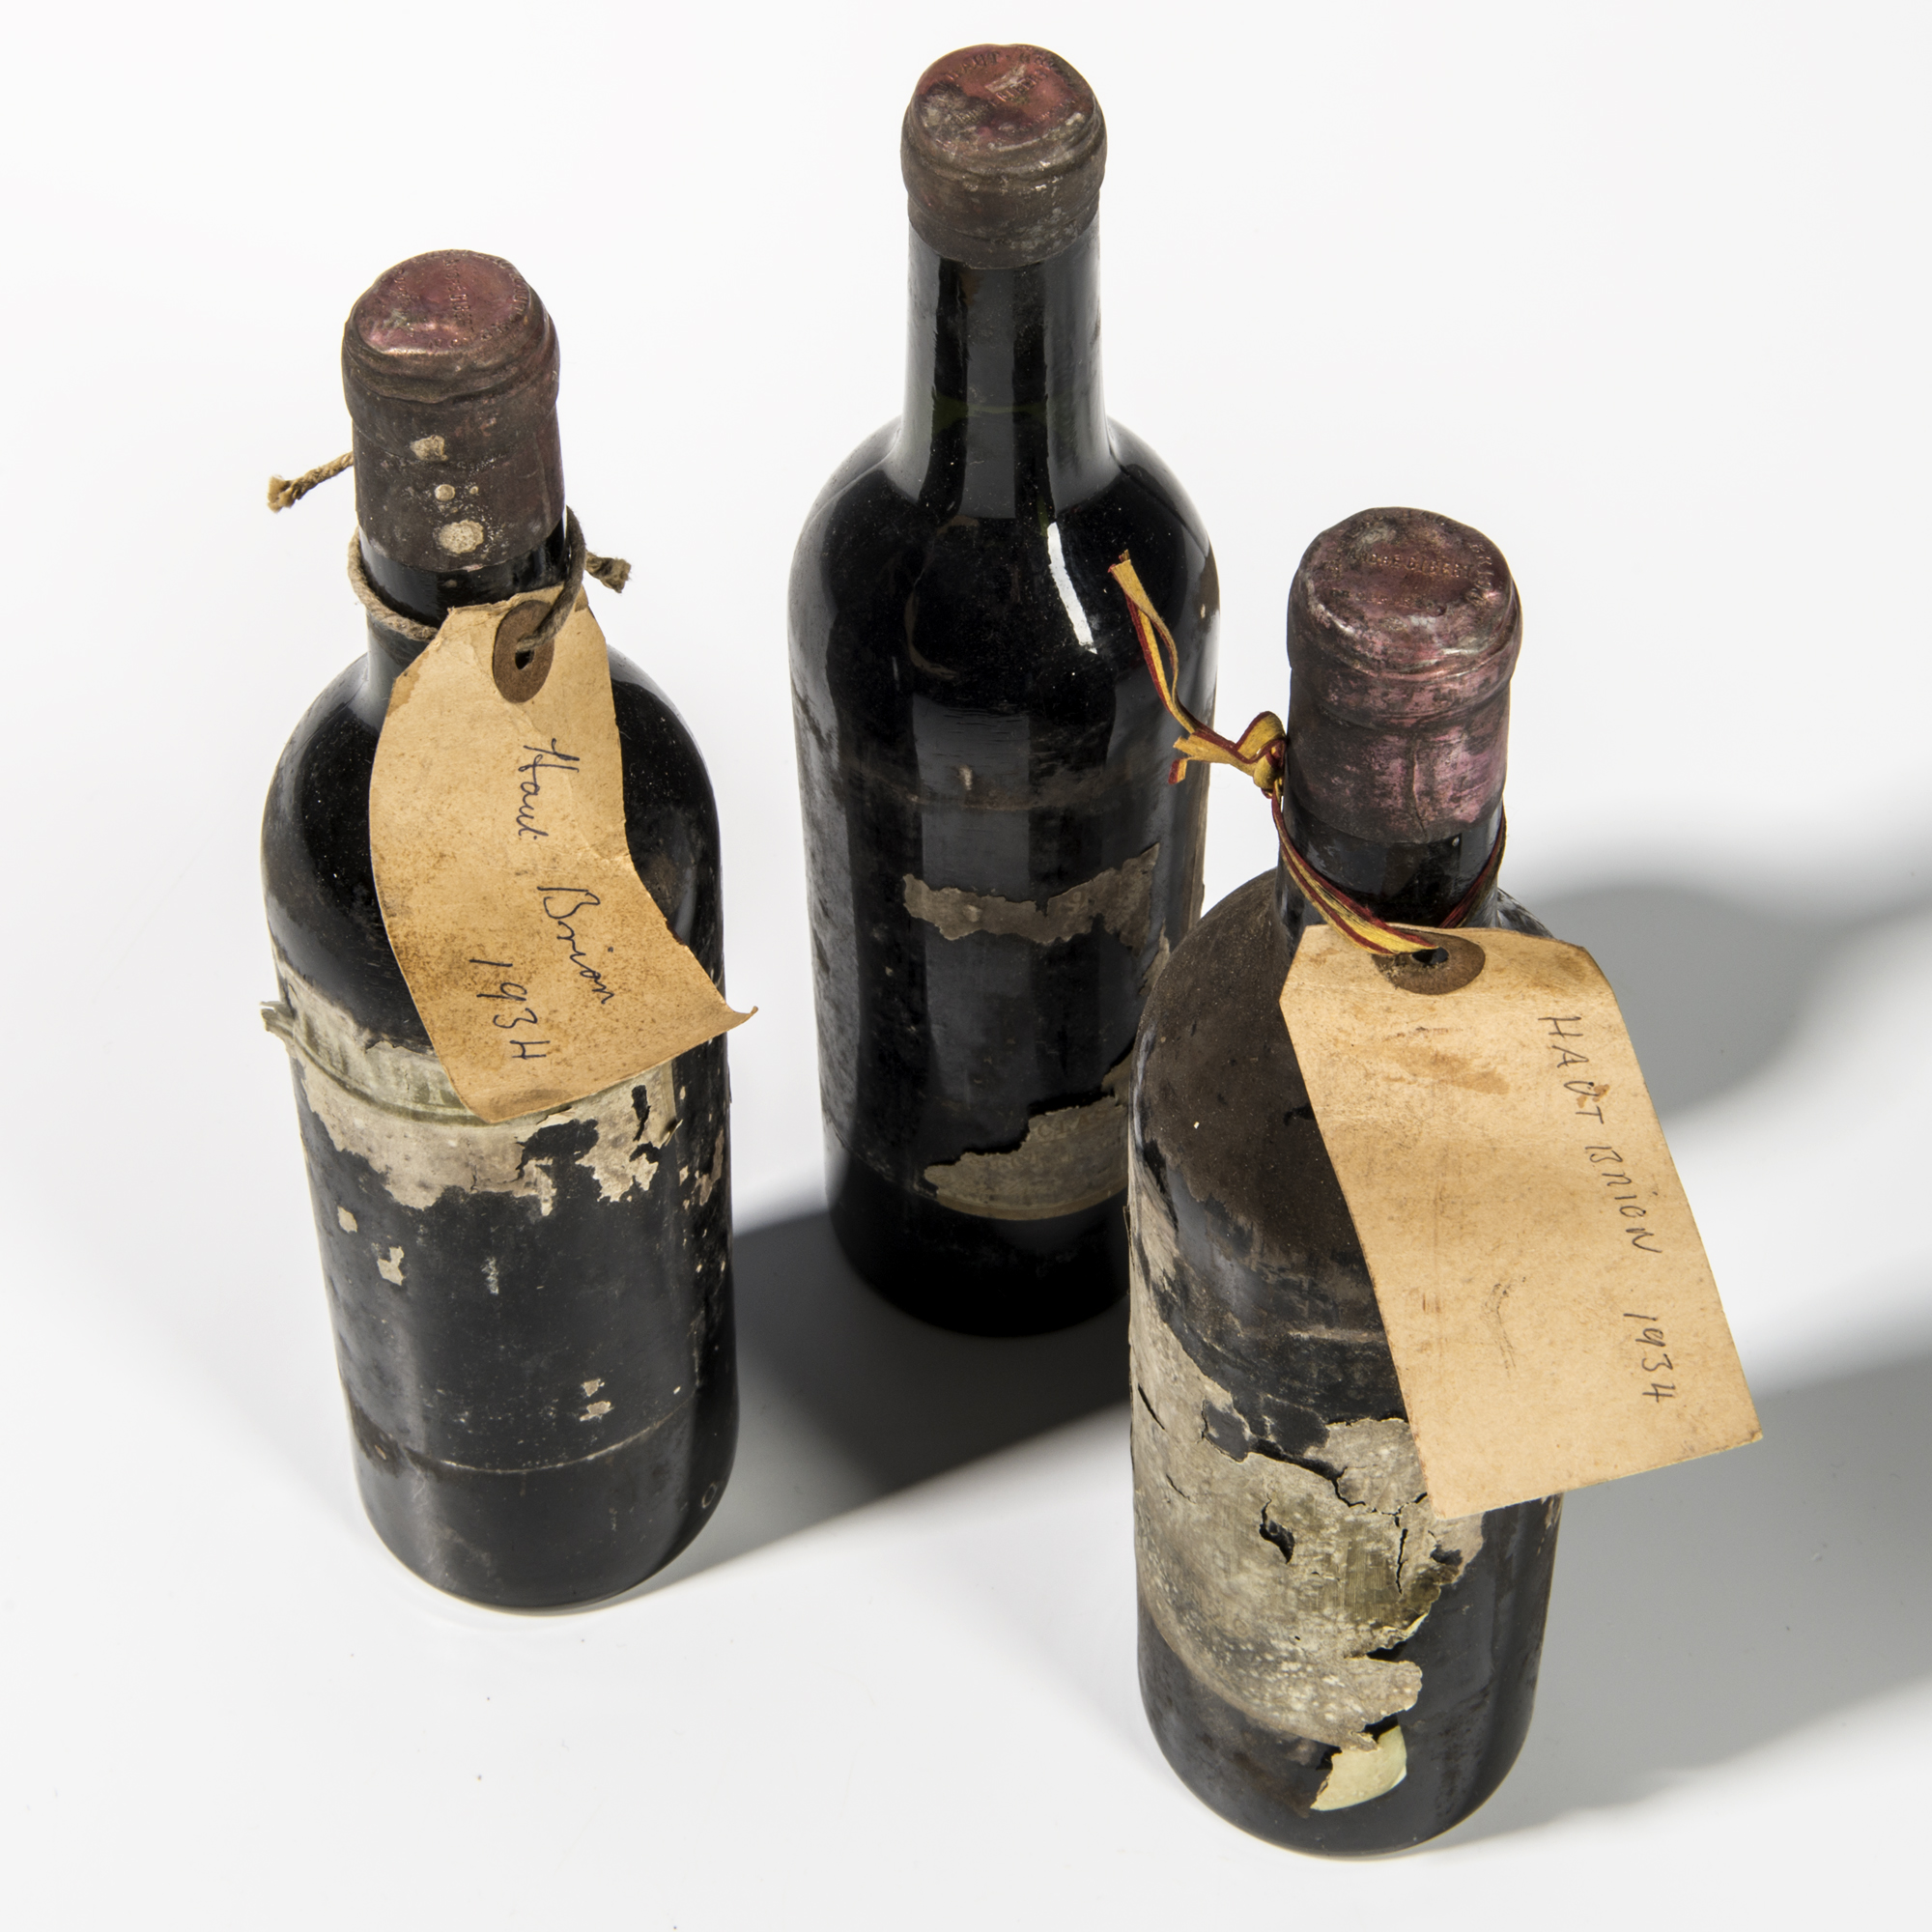 Chateau Haut Brion 1934, 3 demi bottles